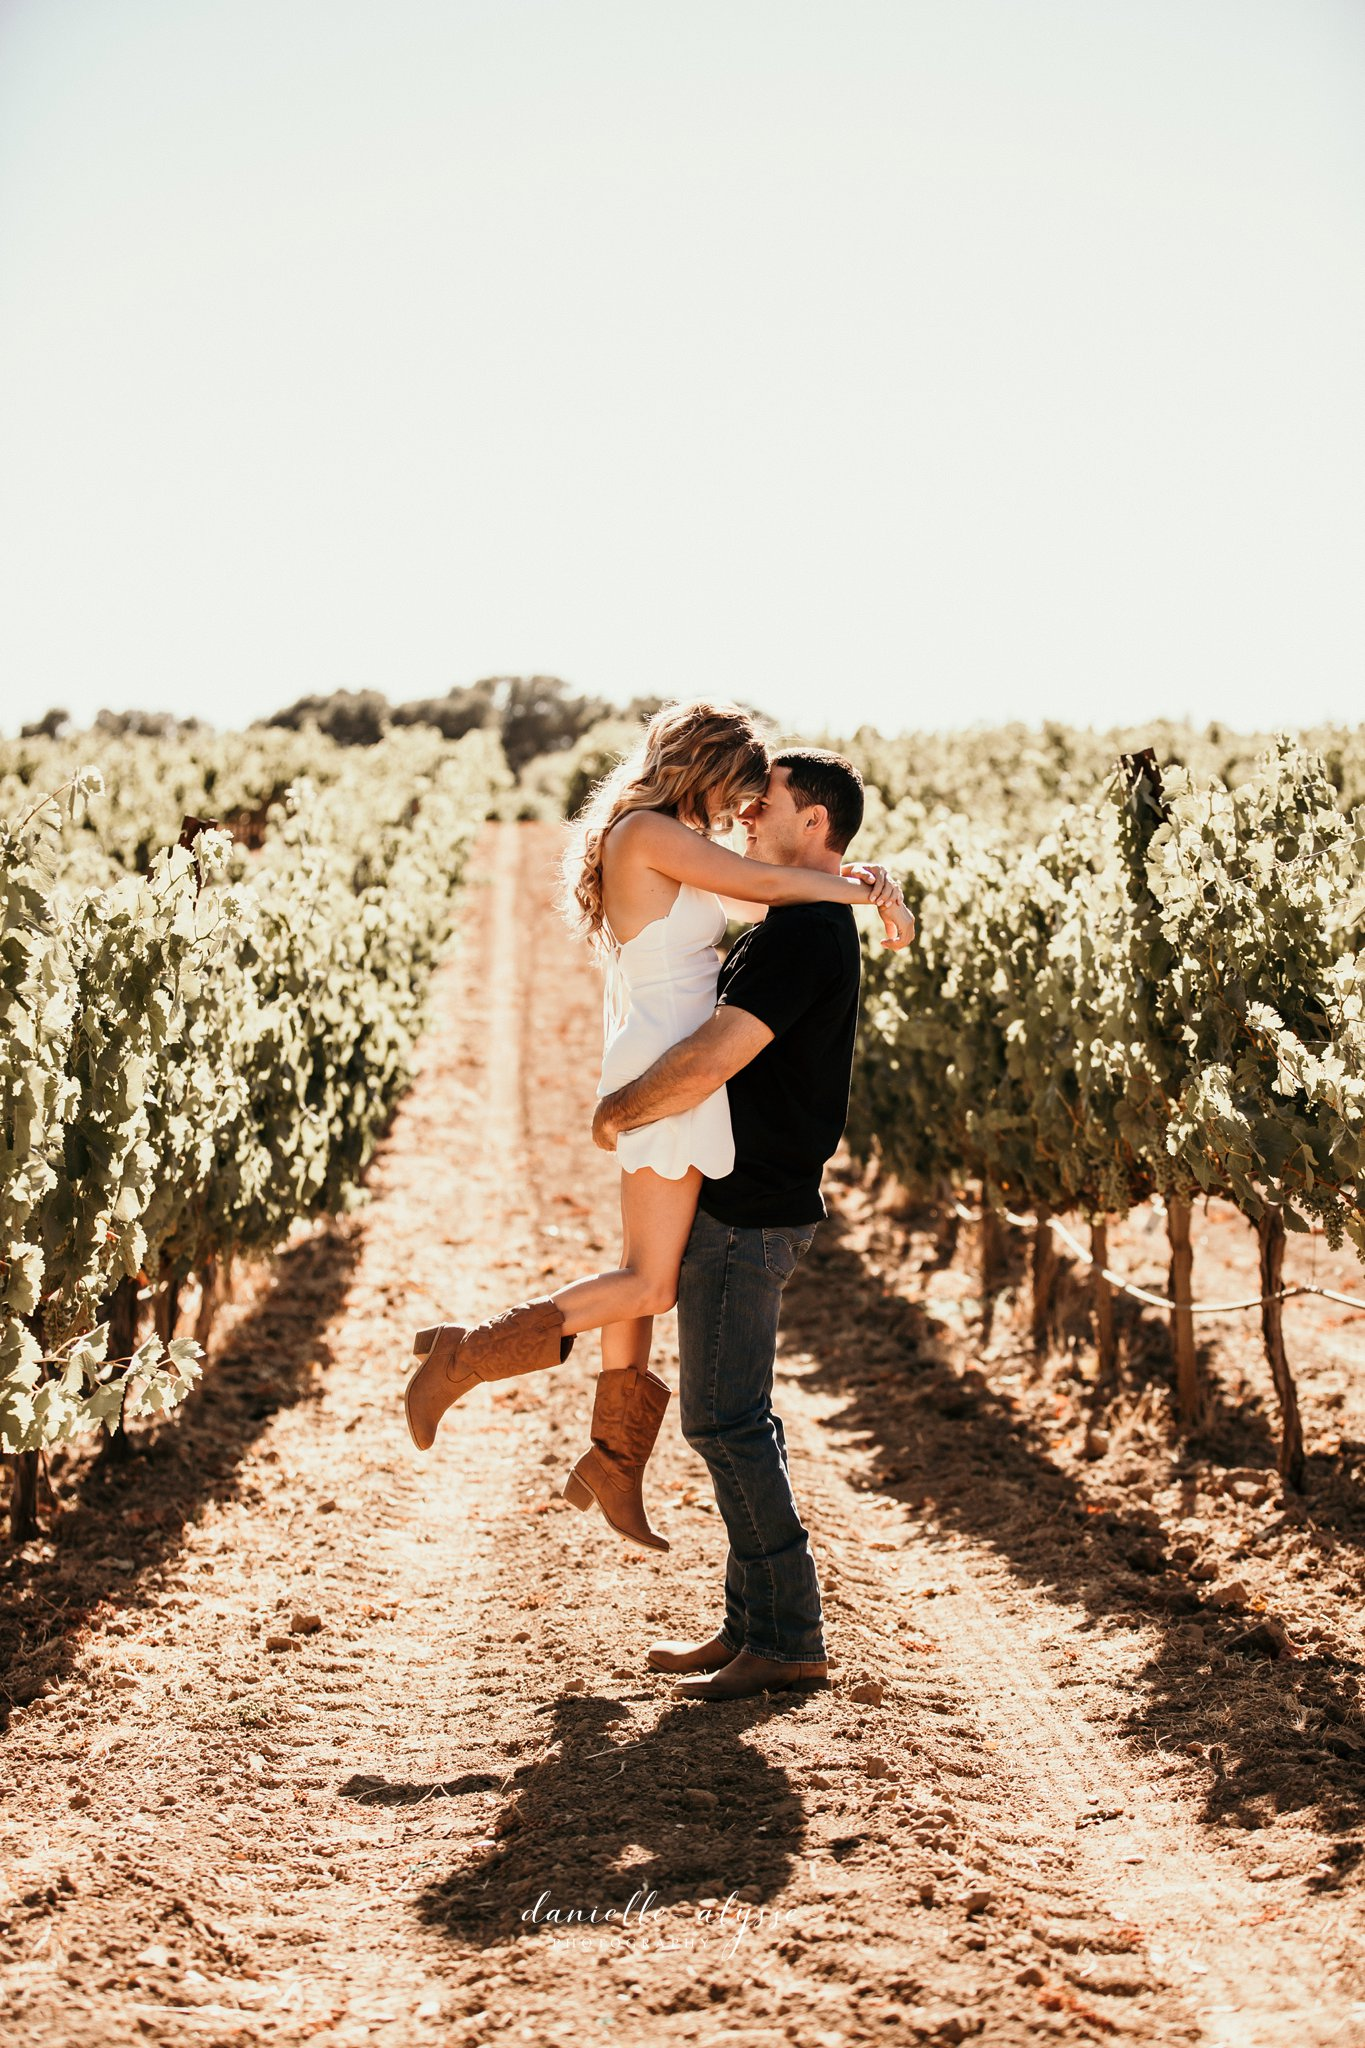 180804_engagement_katie_matt_dillon_beach_napa_danielle_alysse_photography_blog_20_WEB.jpg